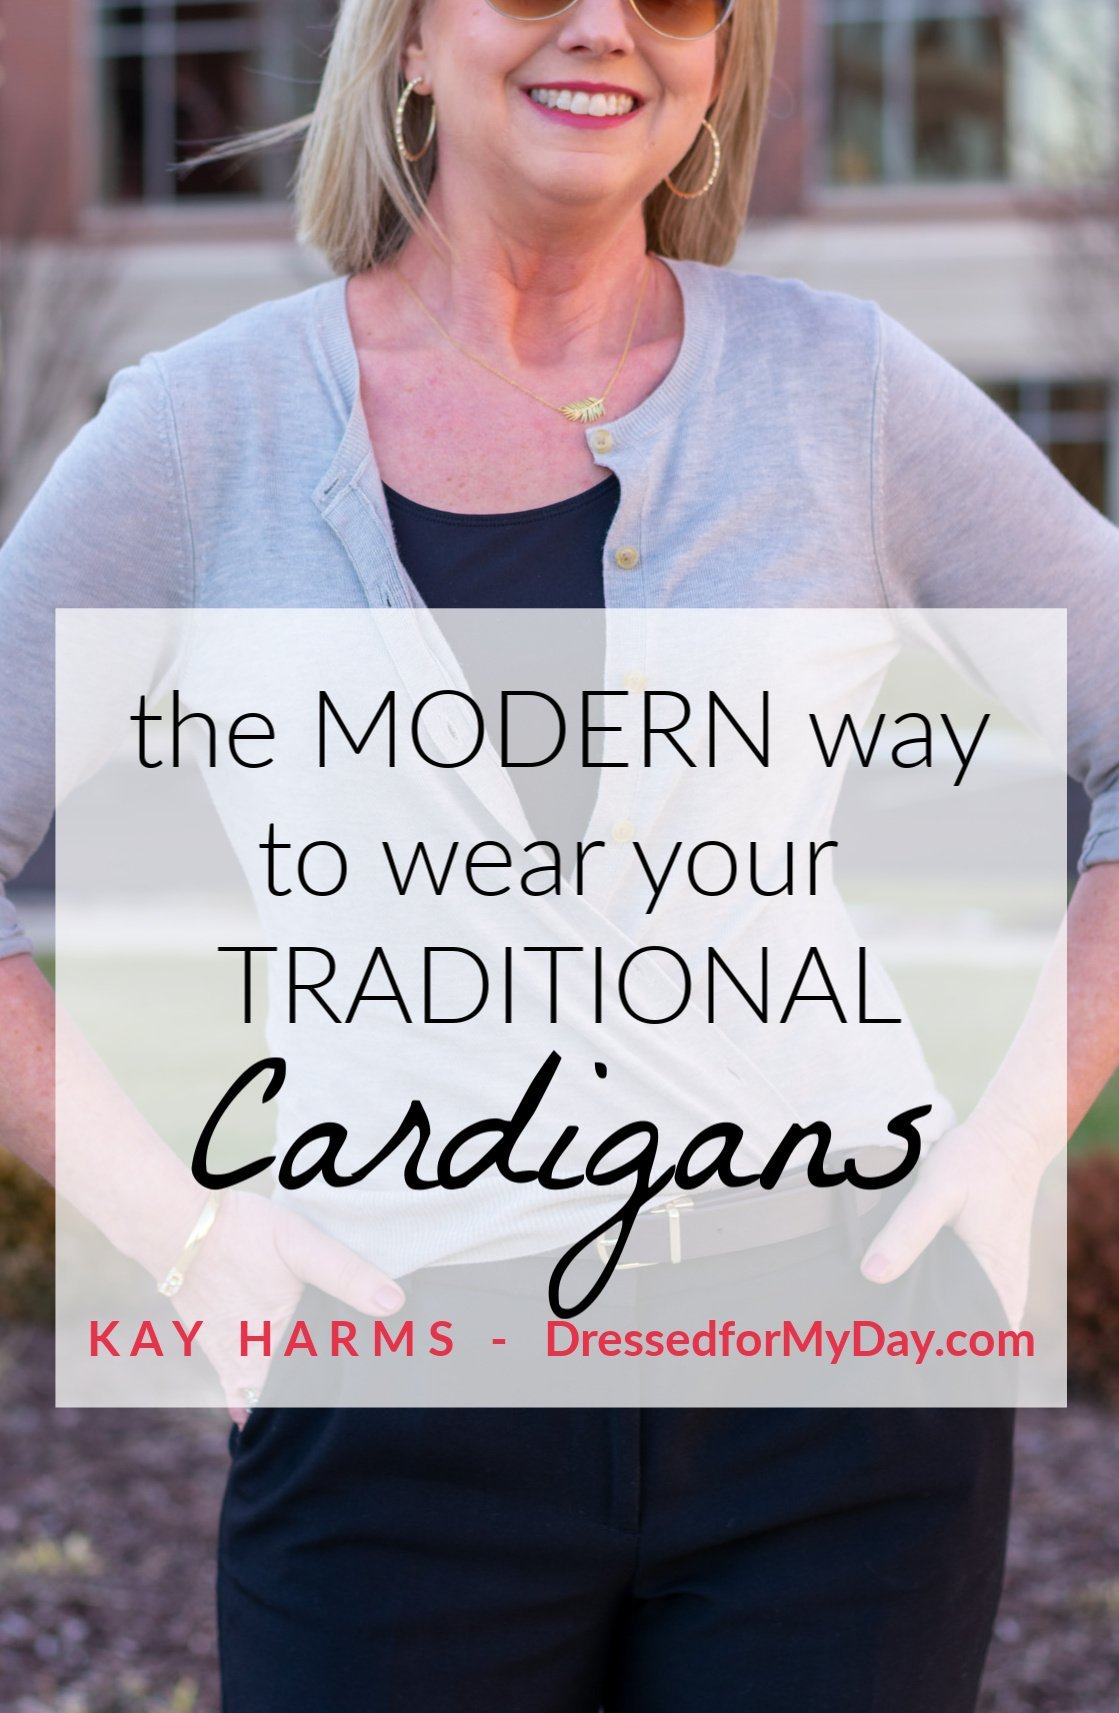 The Modern Way to Wear Your Traditional Cardigans